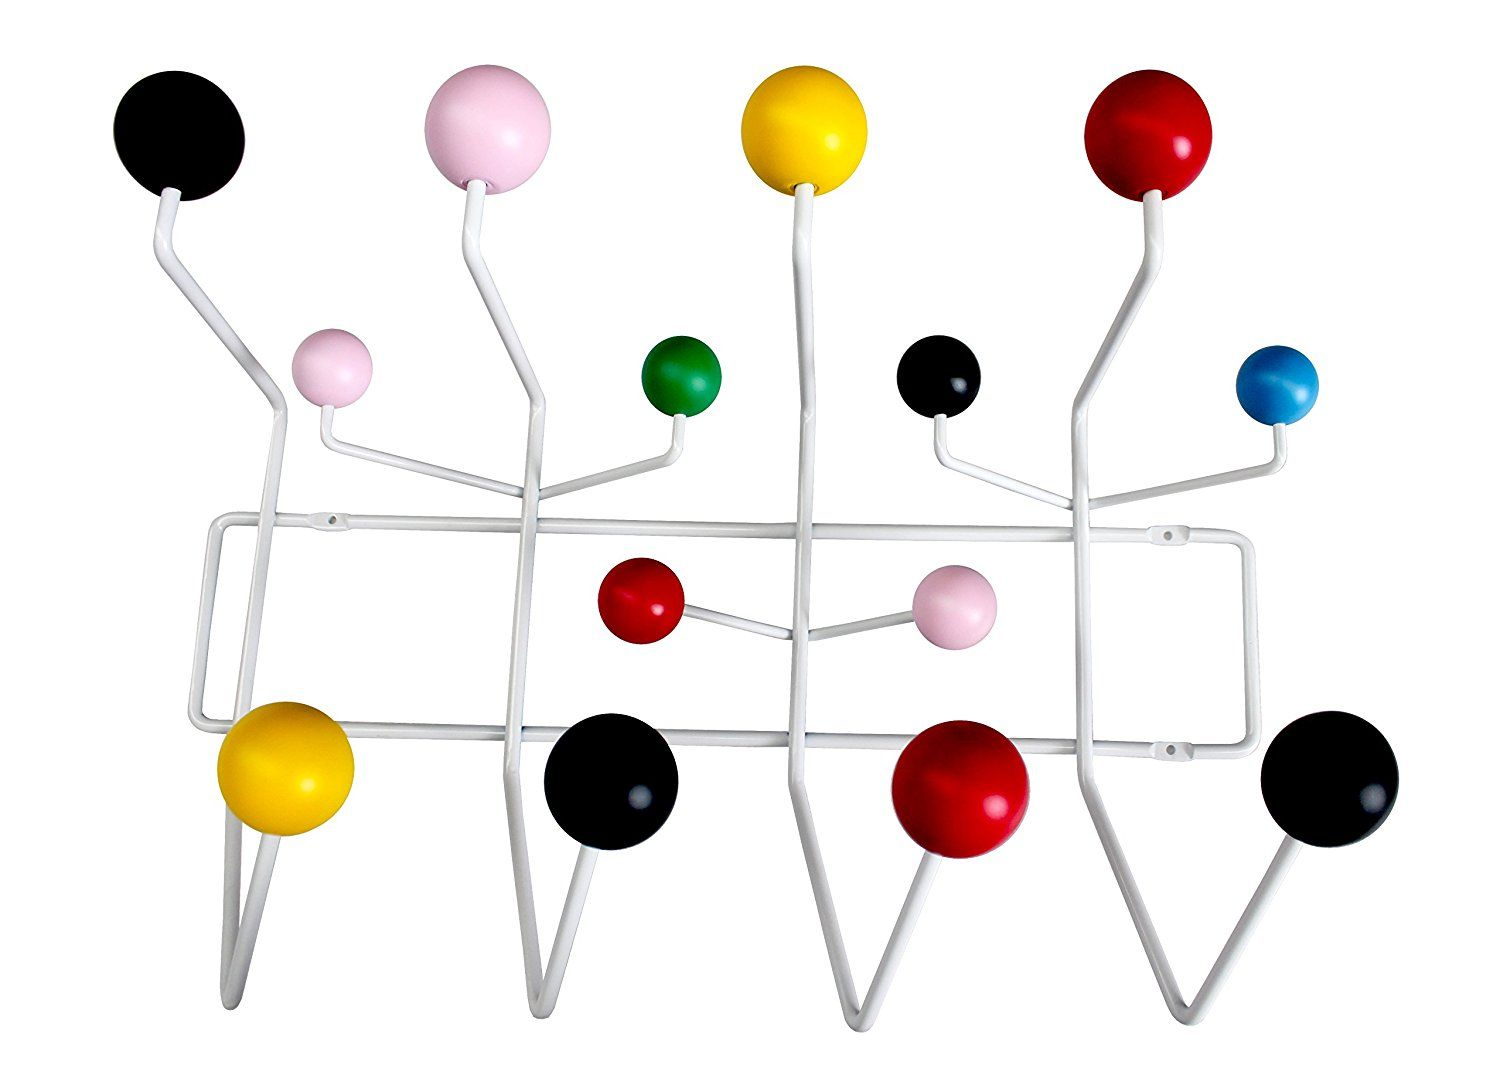 Amazon Com Mlf Eames Hang It All Wall Mounted Coat Rack With Painted Solid Wooden Balls In Eight Colors Multi Col Wall Mounted Coat Rack Wall Mount Coat Rack